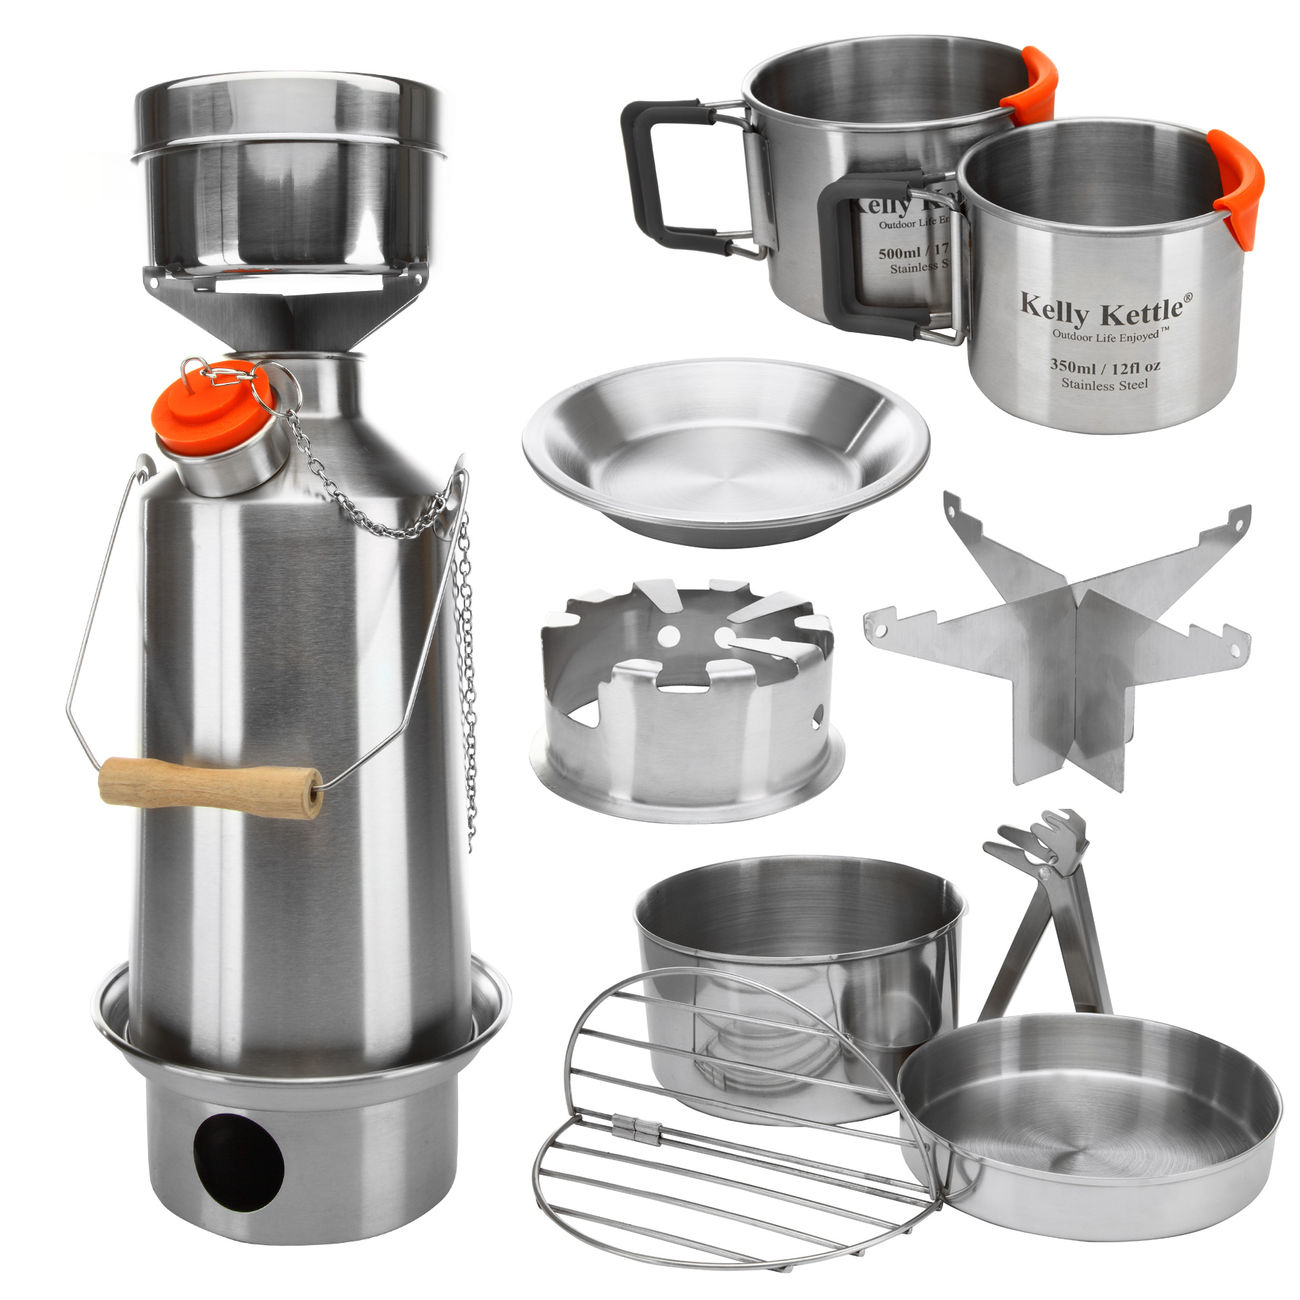 Kelly Kettle Ultimate Base Camp Kit 0